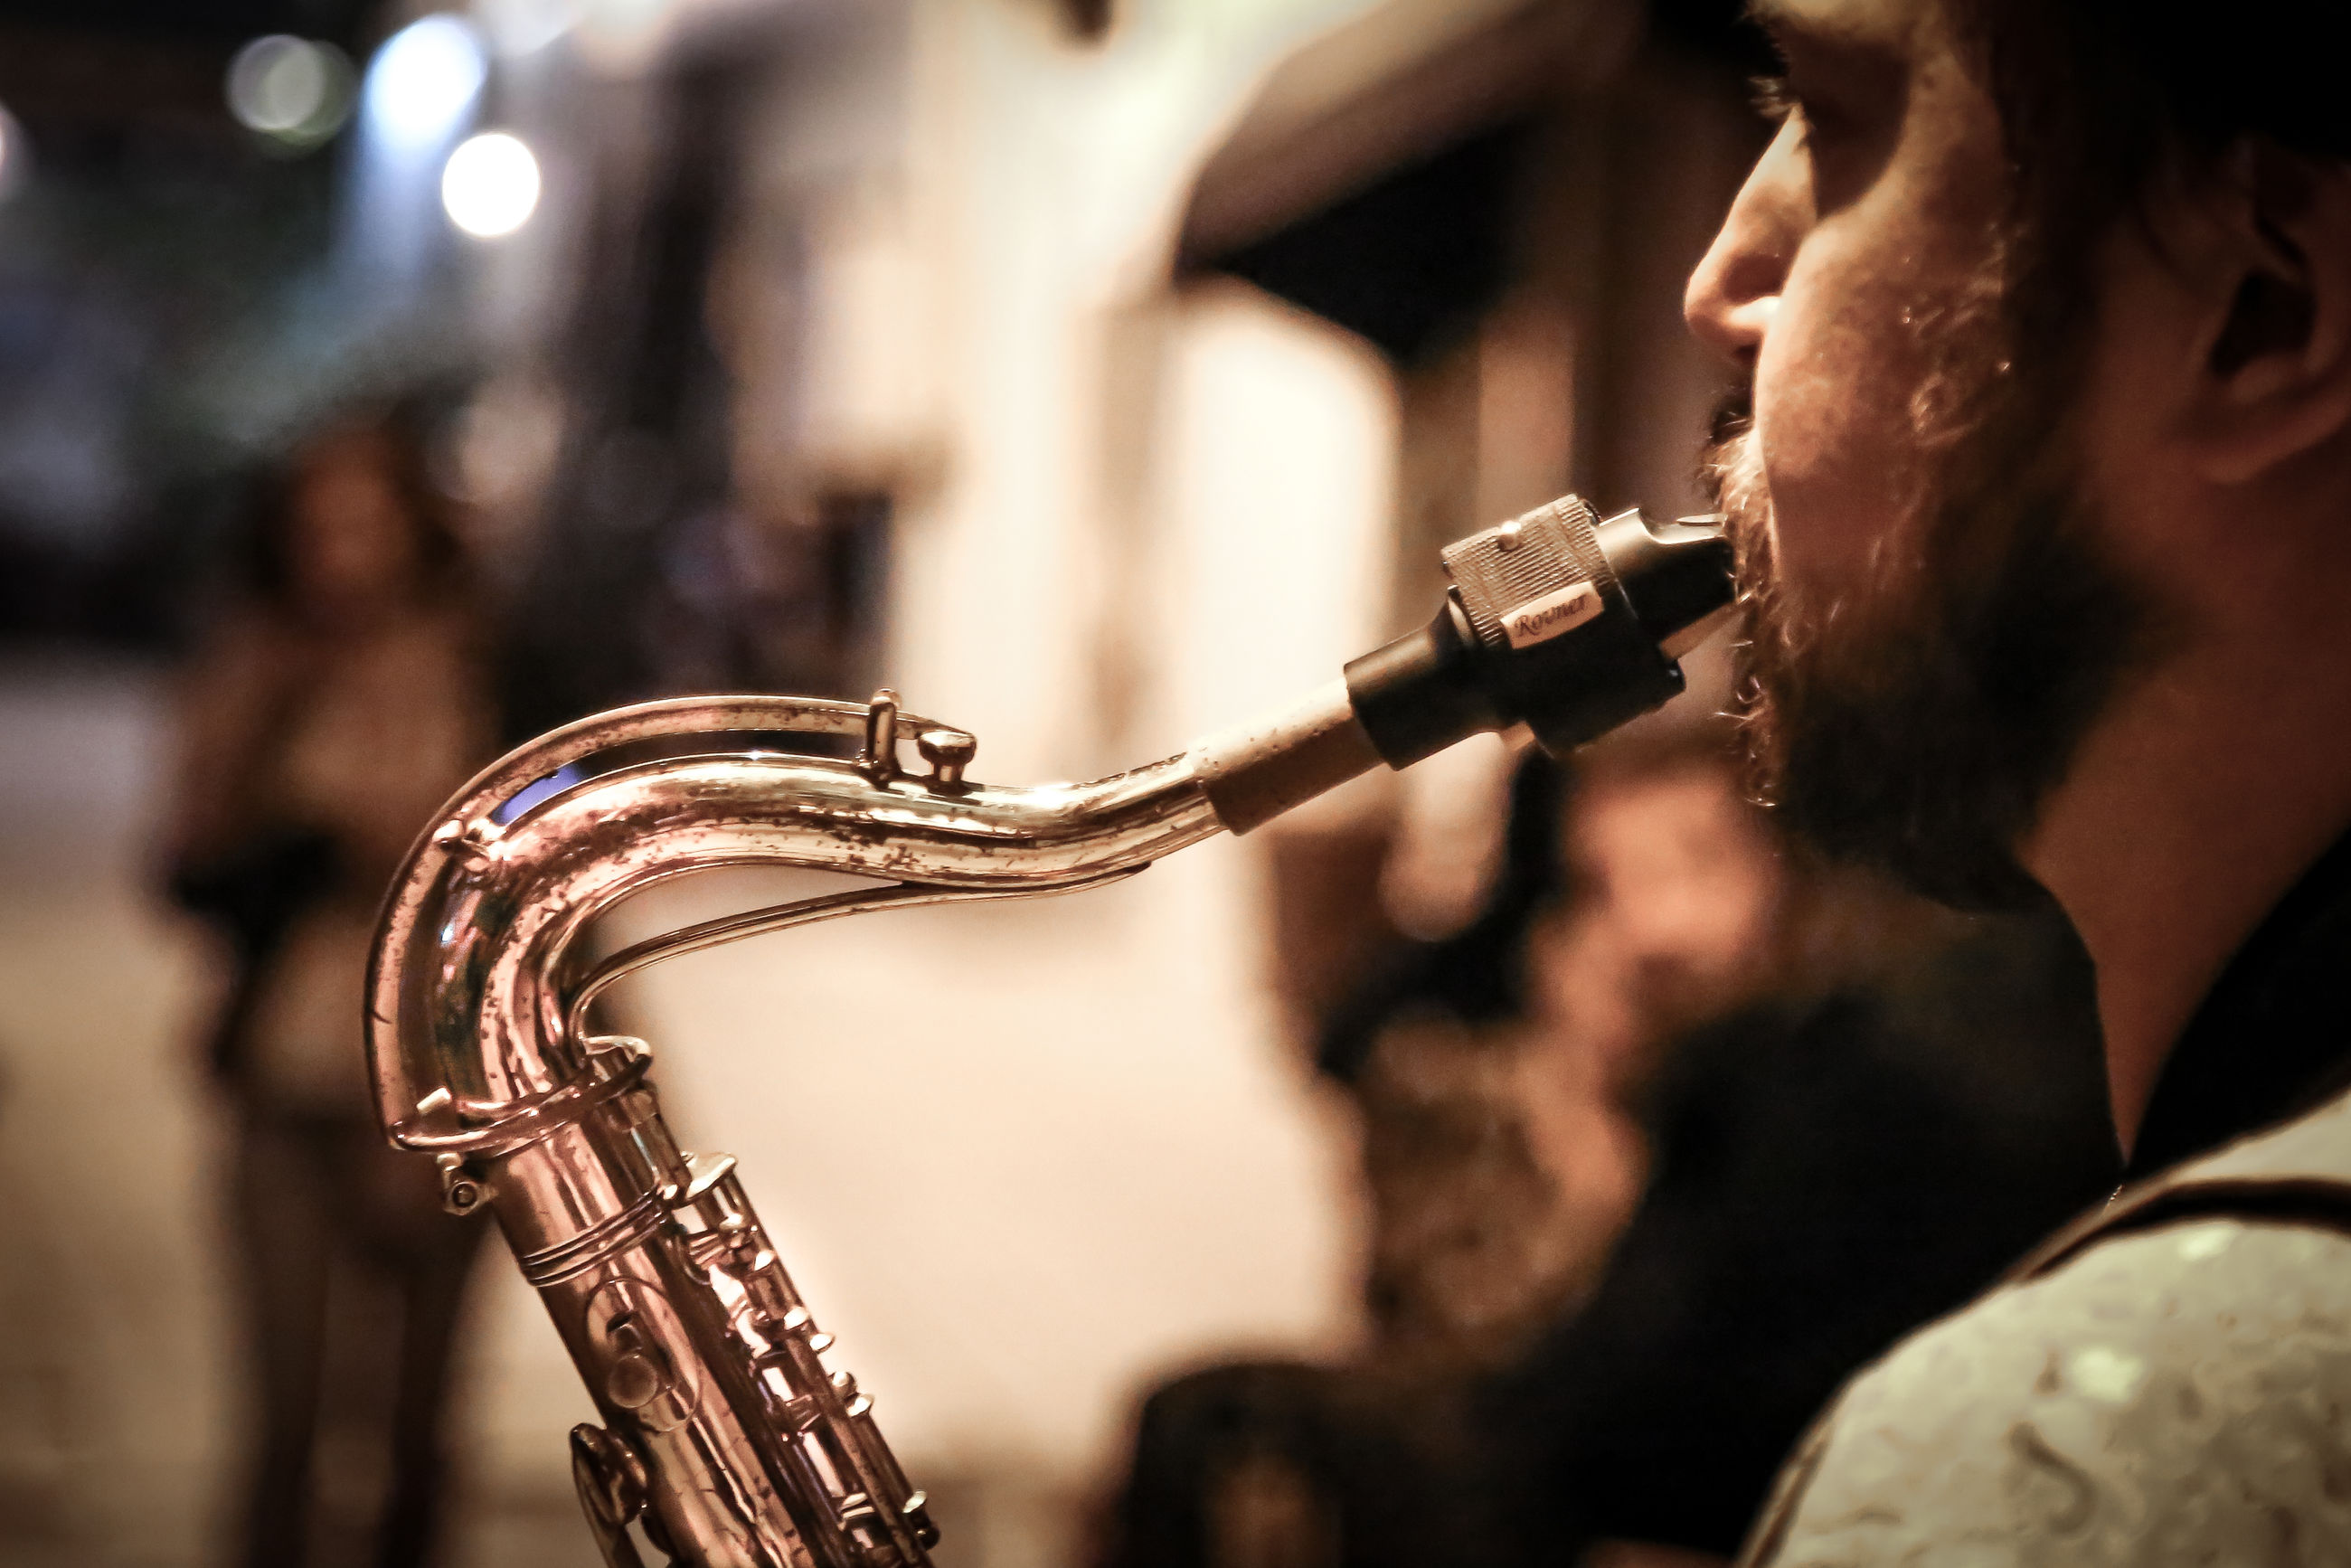 music, performance, adults only, musician, men, only men, adult, musical instrument, saxophone, people, jazz music, performing arts event, one person, one man only, close-up, playing, indoors, saxophonist, singer, day